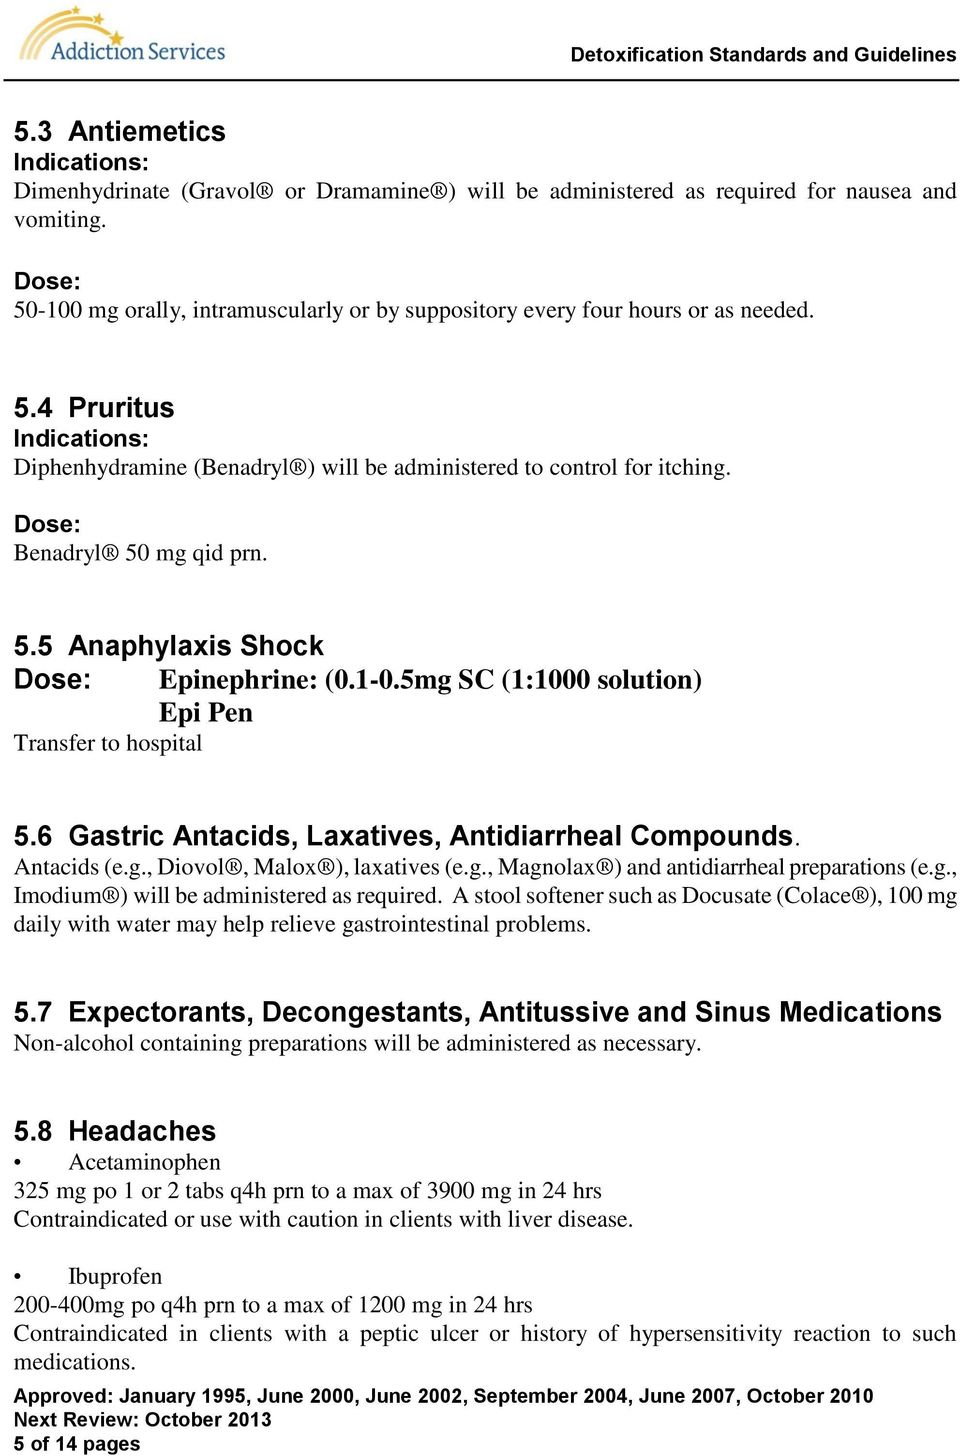 Benadryl 50 mg qid prn. 5.5 Anaphylaxis Shock Epinephrine: (0.1-0.5mg SC (1:1000 solution) Epi Pen Transfer to hospital 5.6 Gastric Antacids, Laxatives, Antidiarrheal Compounds. Antacids (e.g., Diovol, Malox ), laxatives (e.